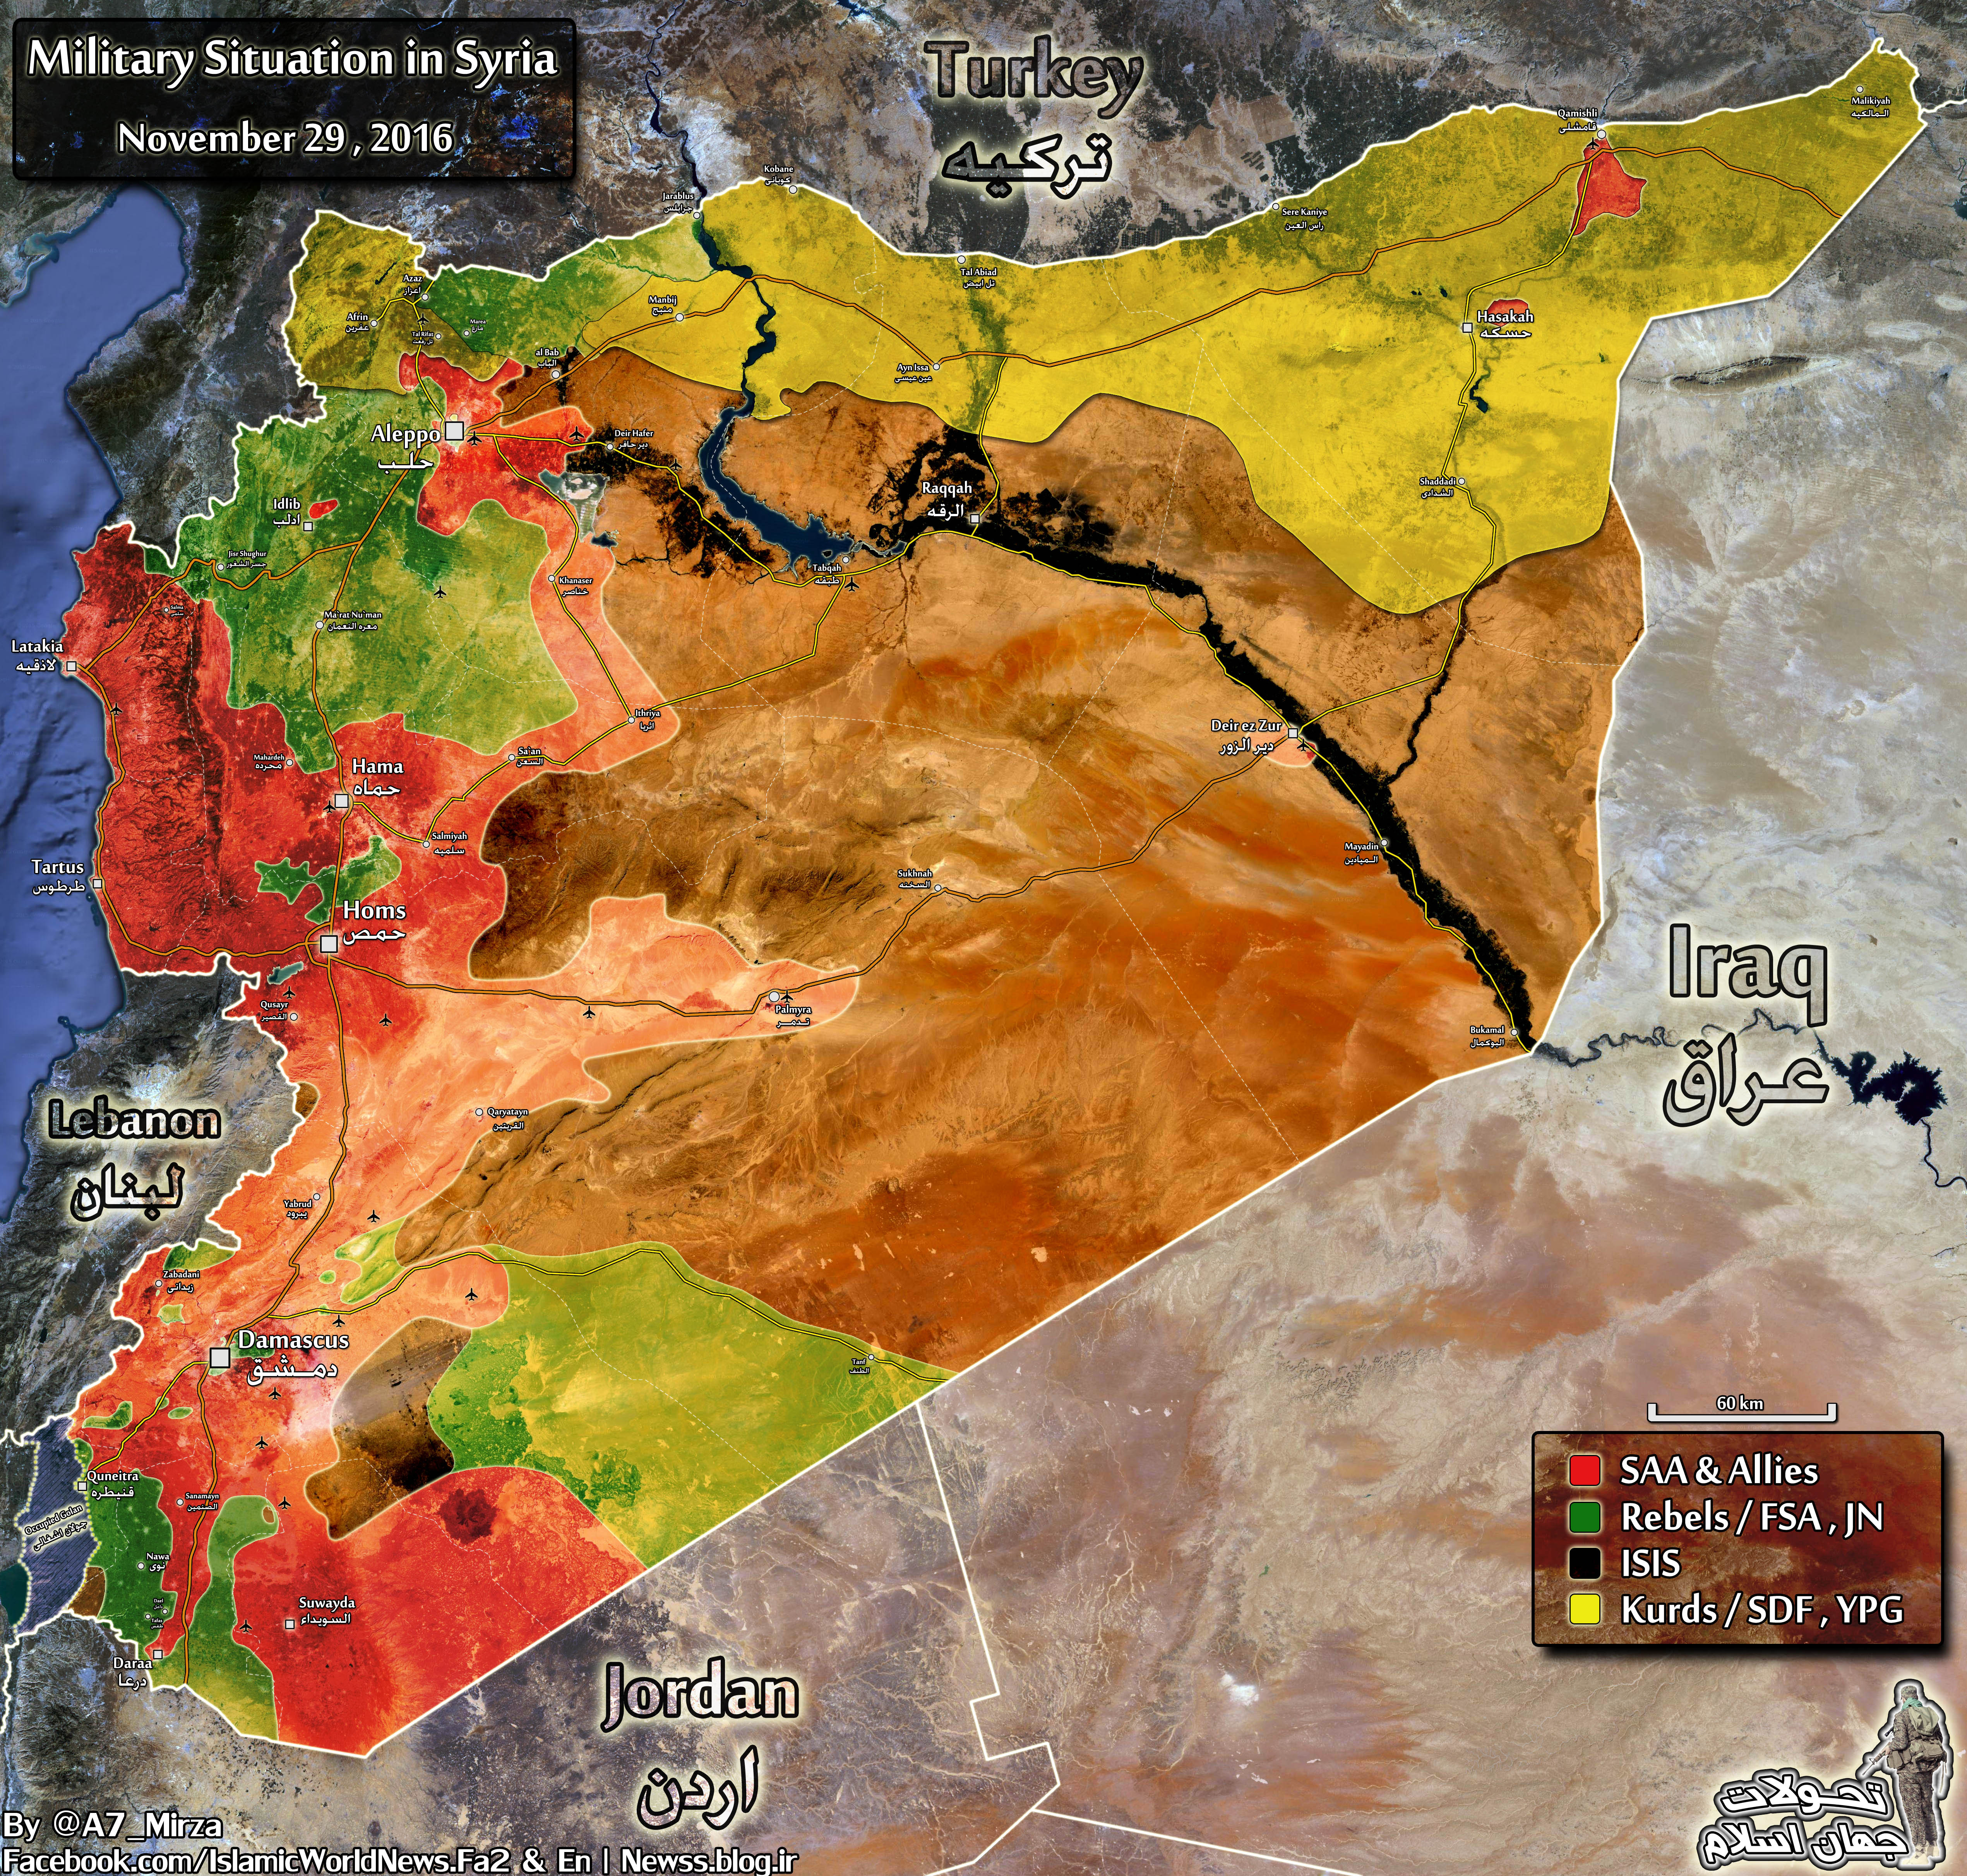 Map Update: General Look at Military Situation in Syria on November 29, 2016